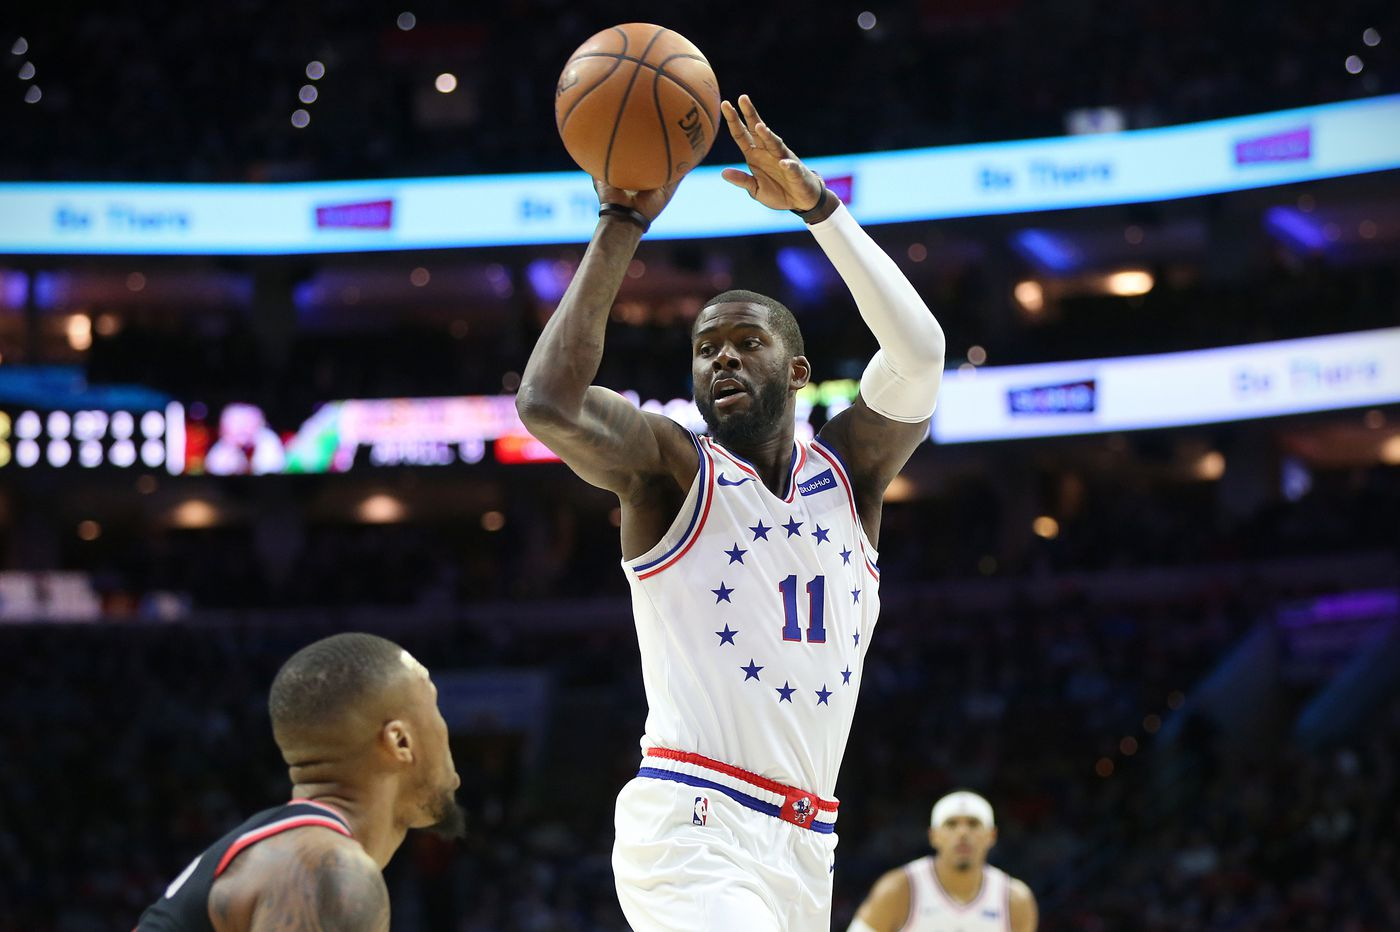 Sixers playoff notes: James Ennis returns for Game 2